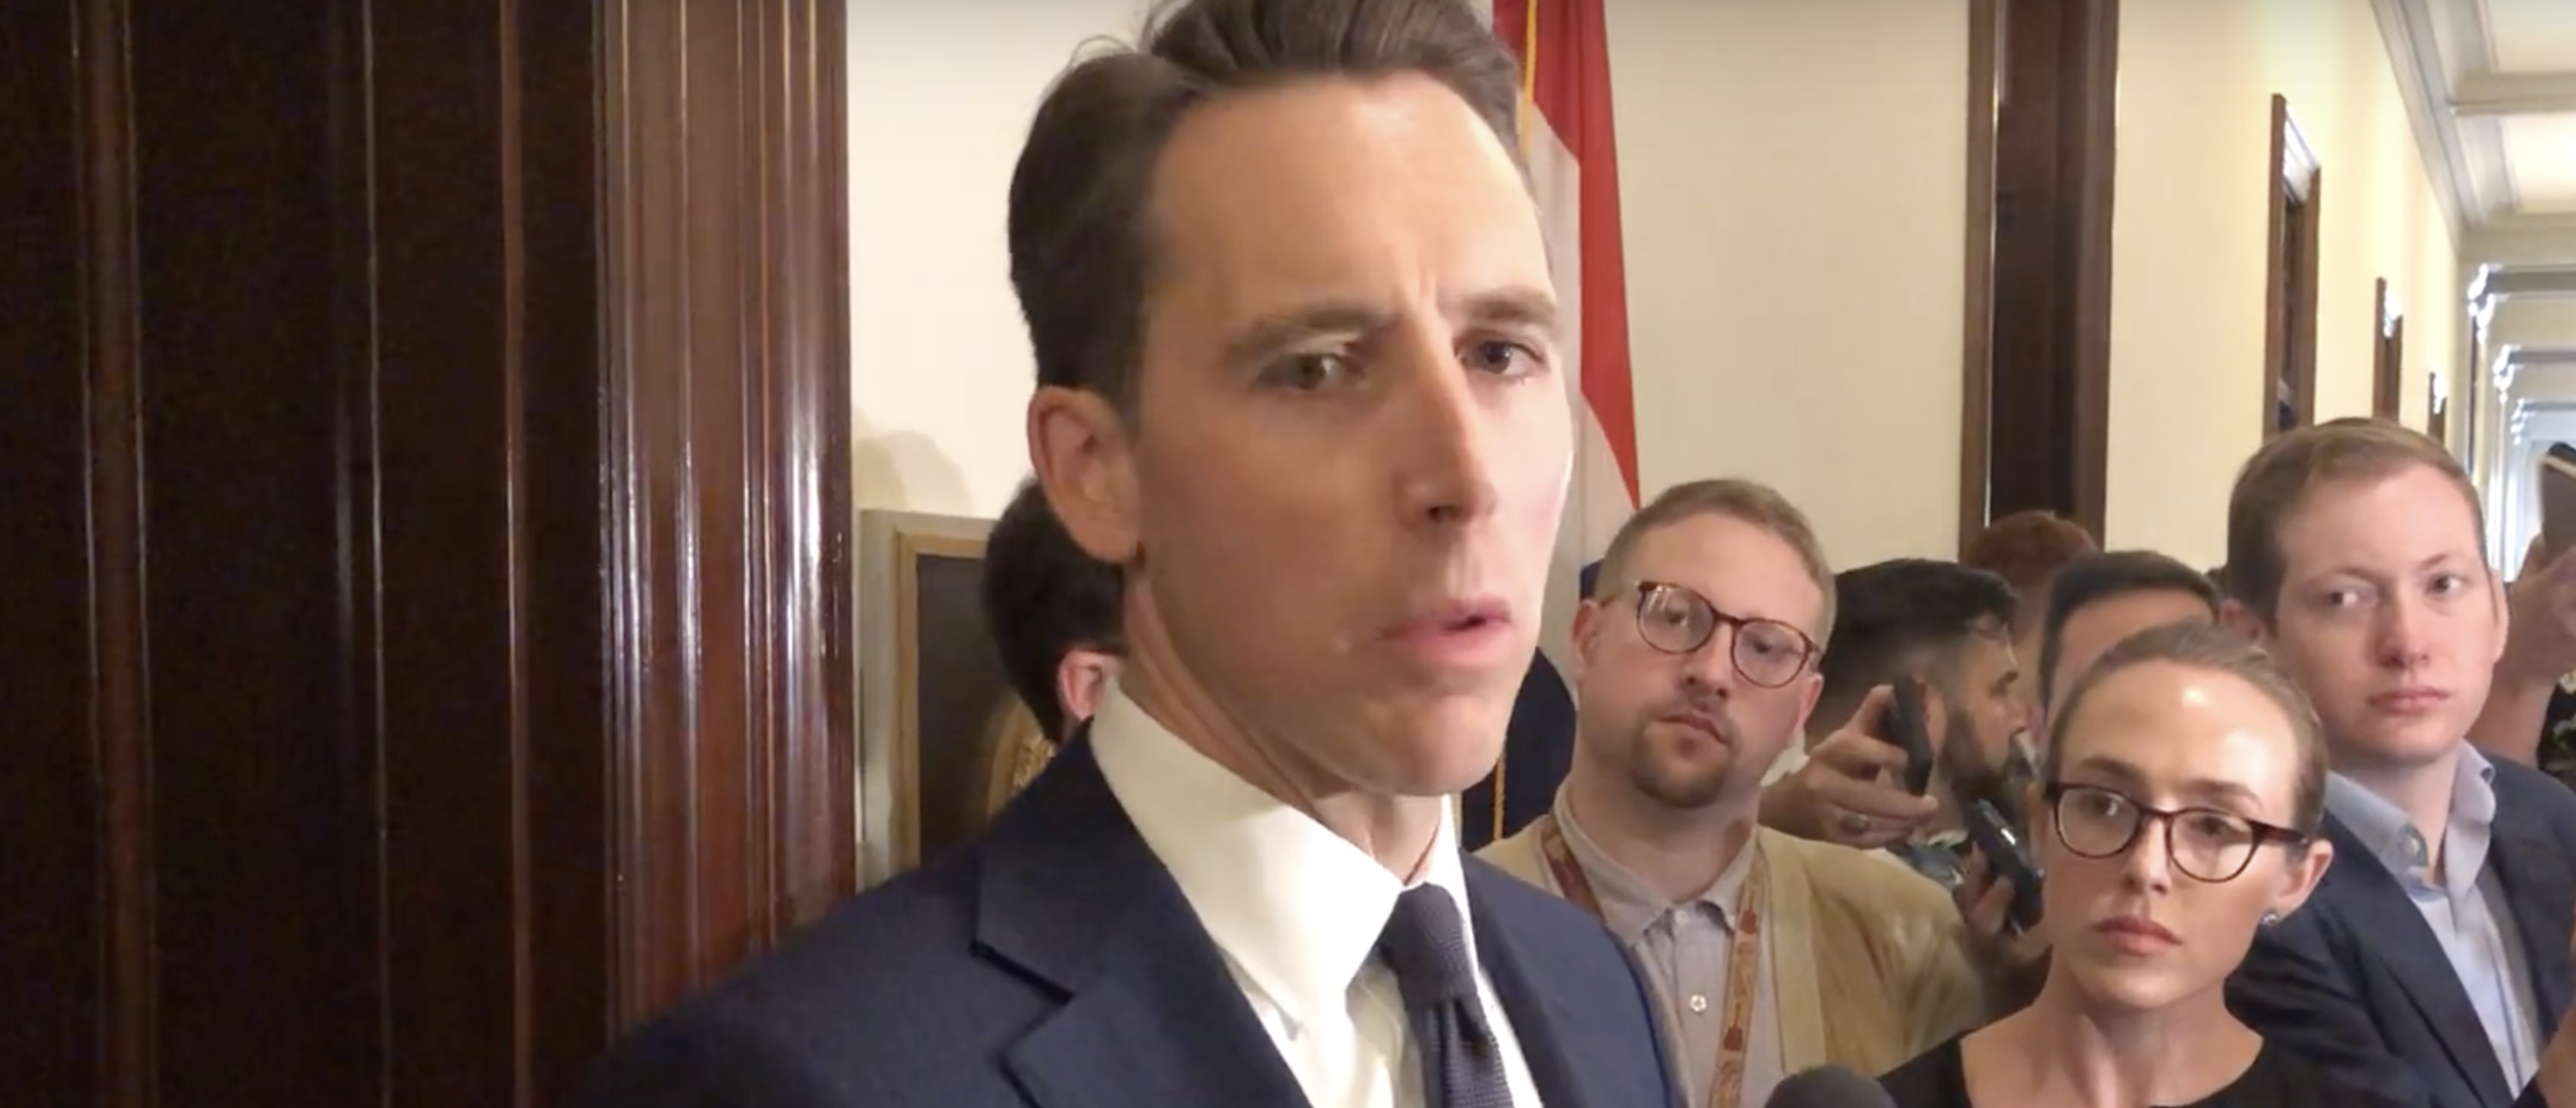 Sen Hawley Says Zuckerberg Told Him There 'Was Clearly Bias' In The LiveAction Fact Check